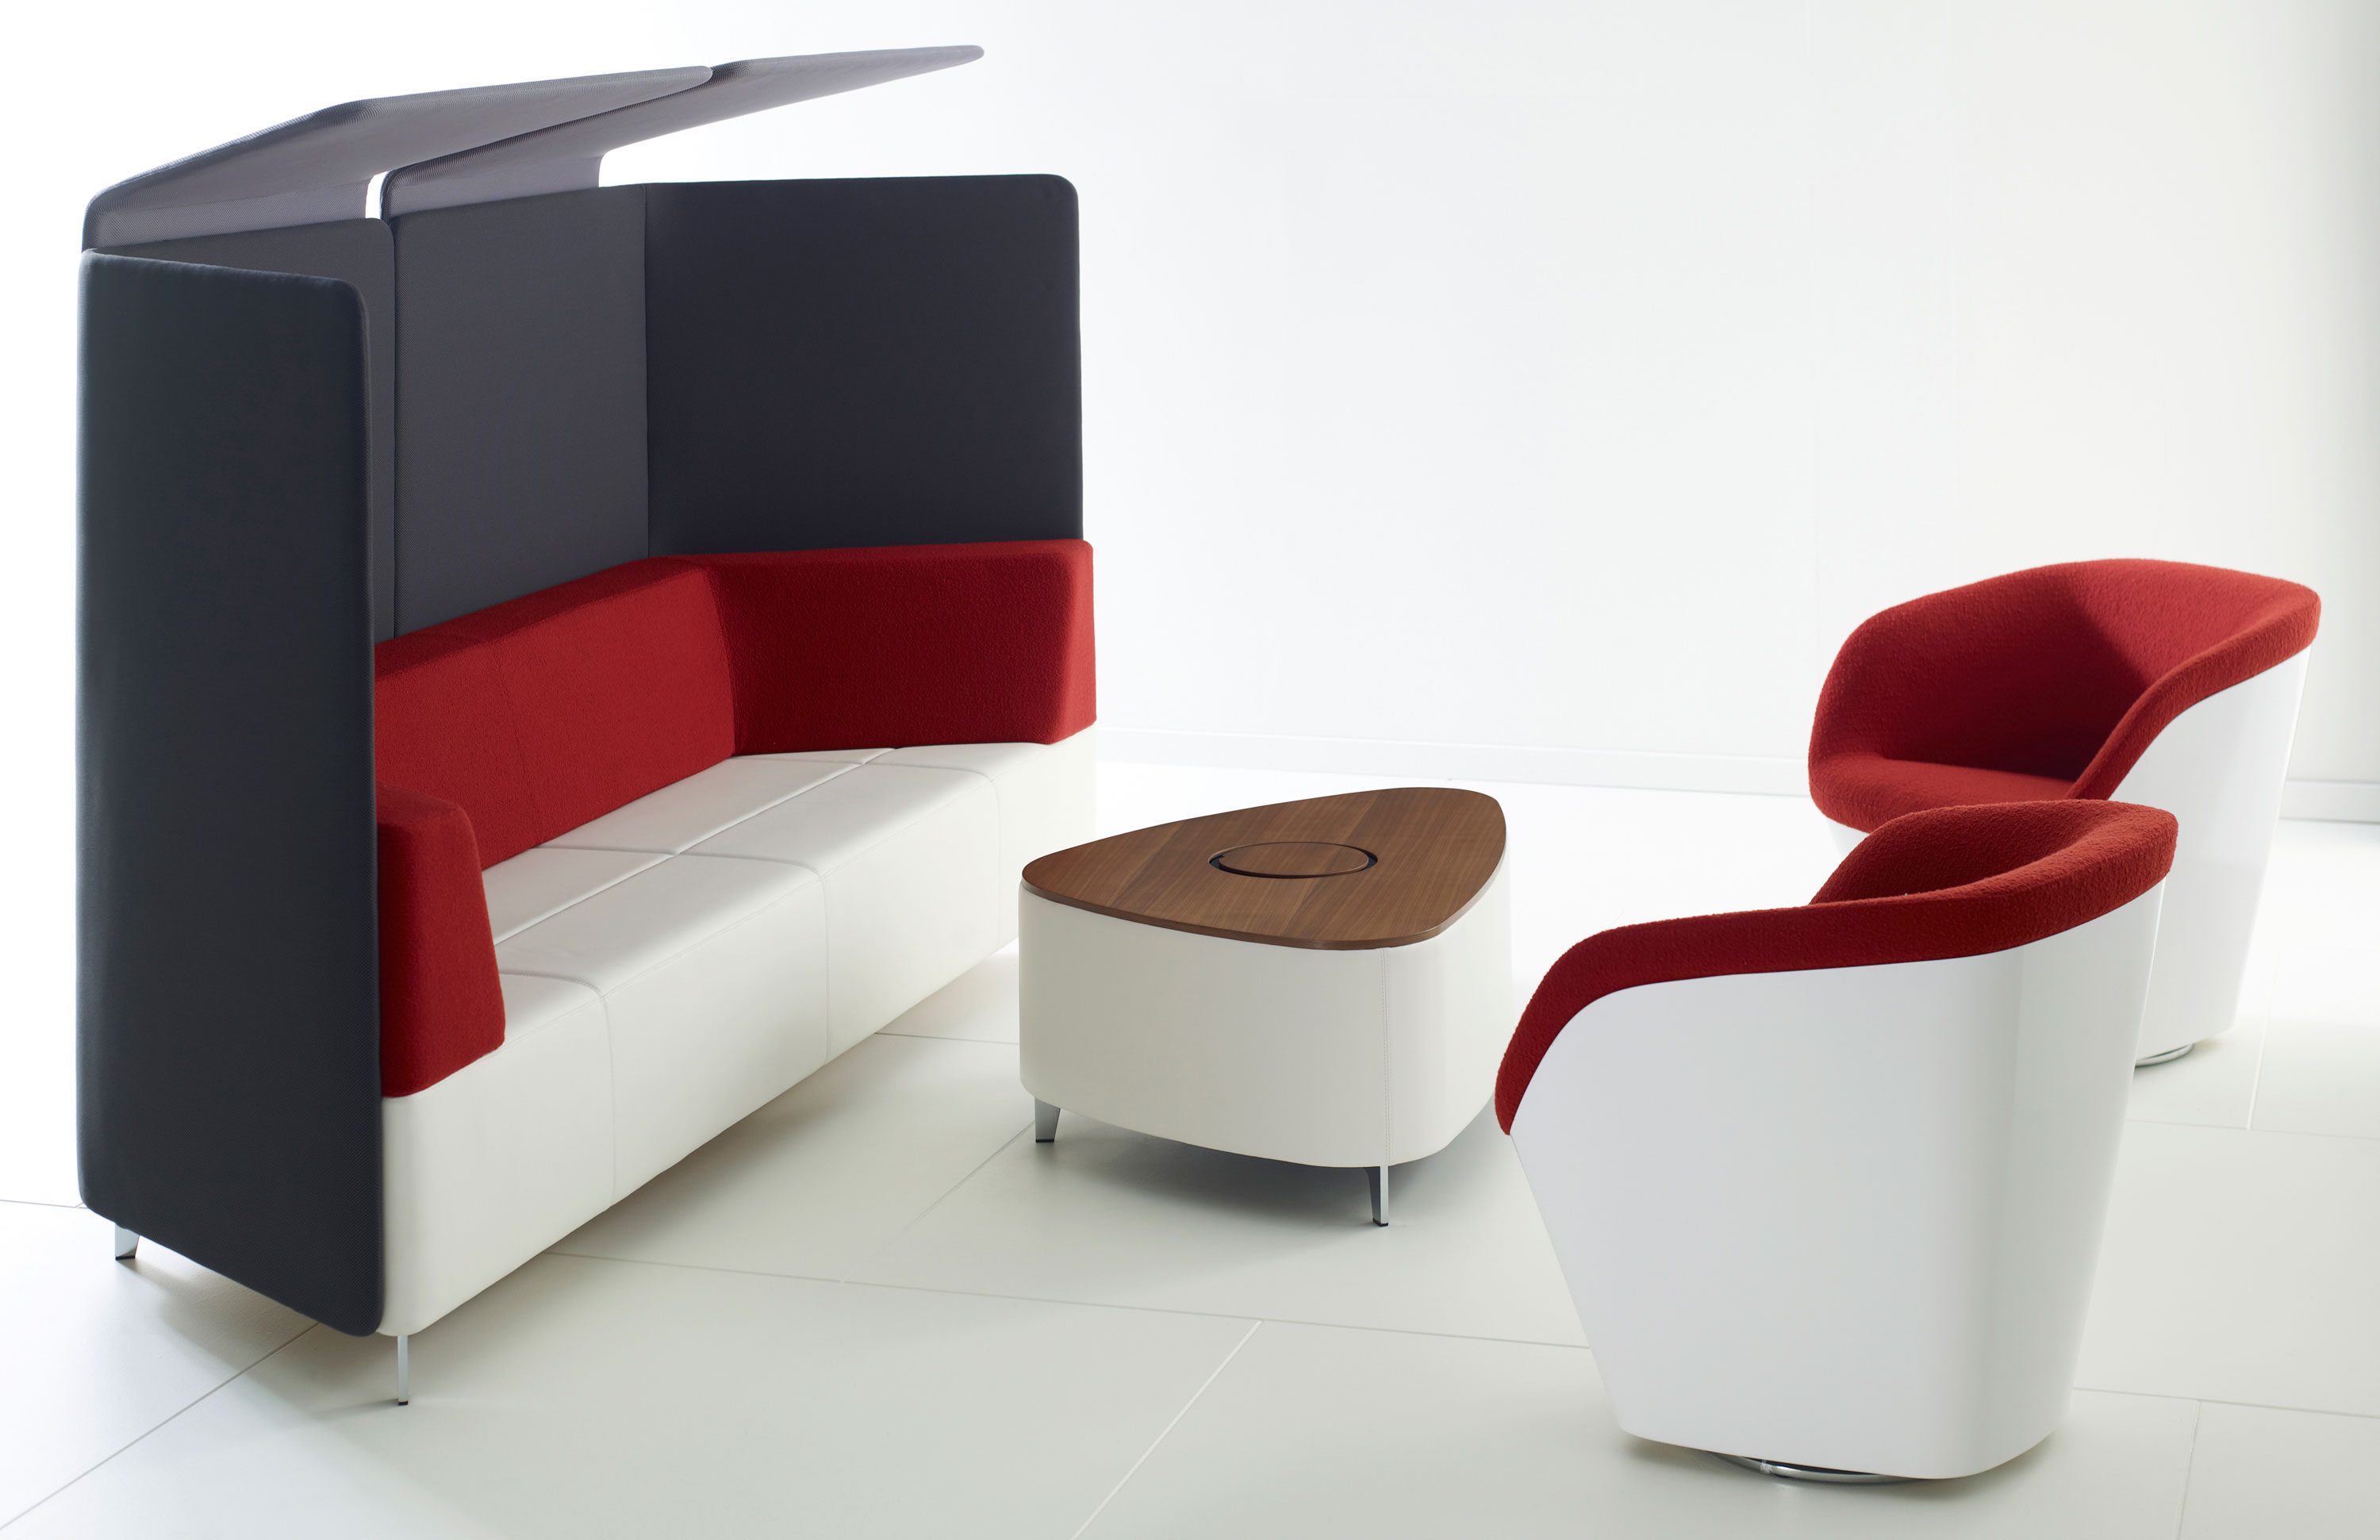 Acoustic furniture more privacy less noise modern for New modern furniture